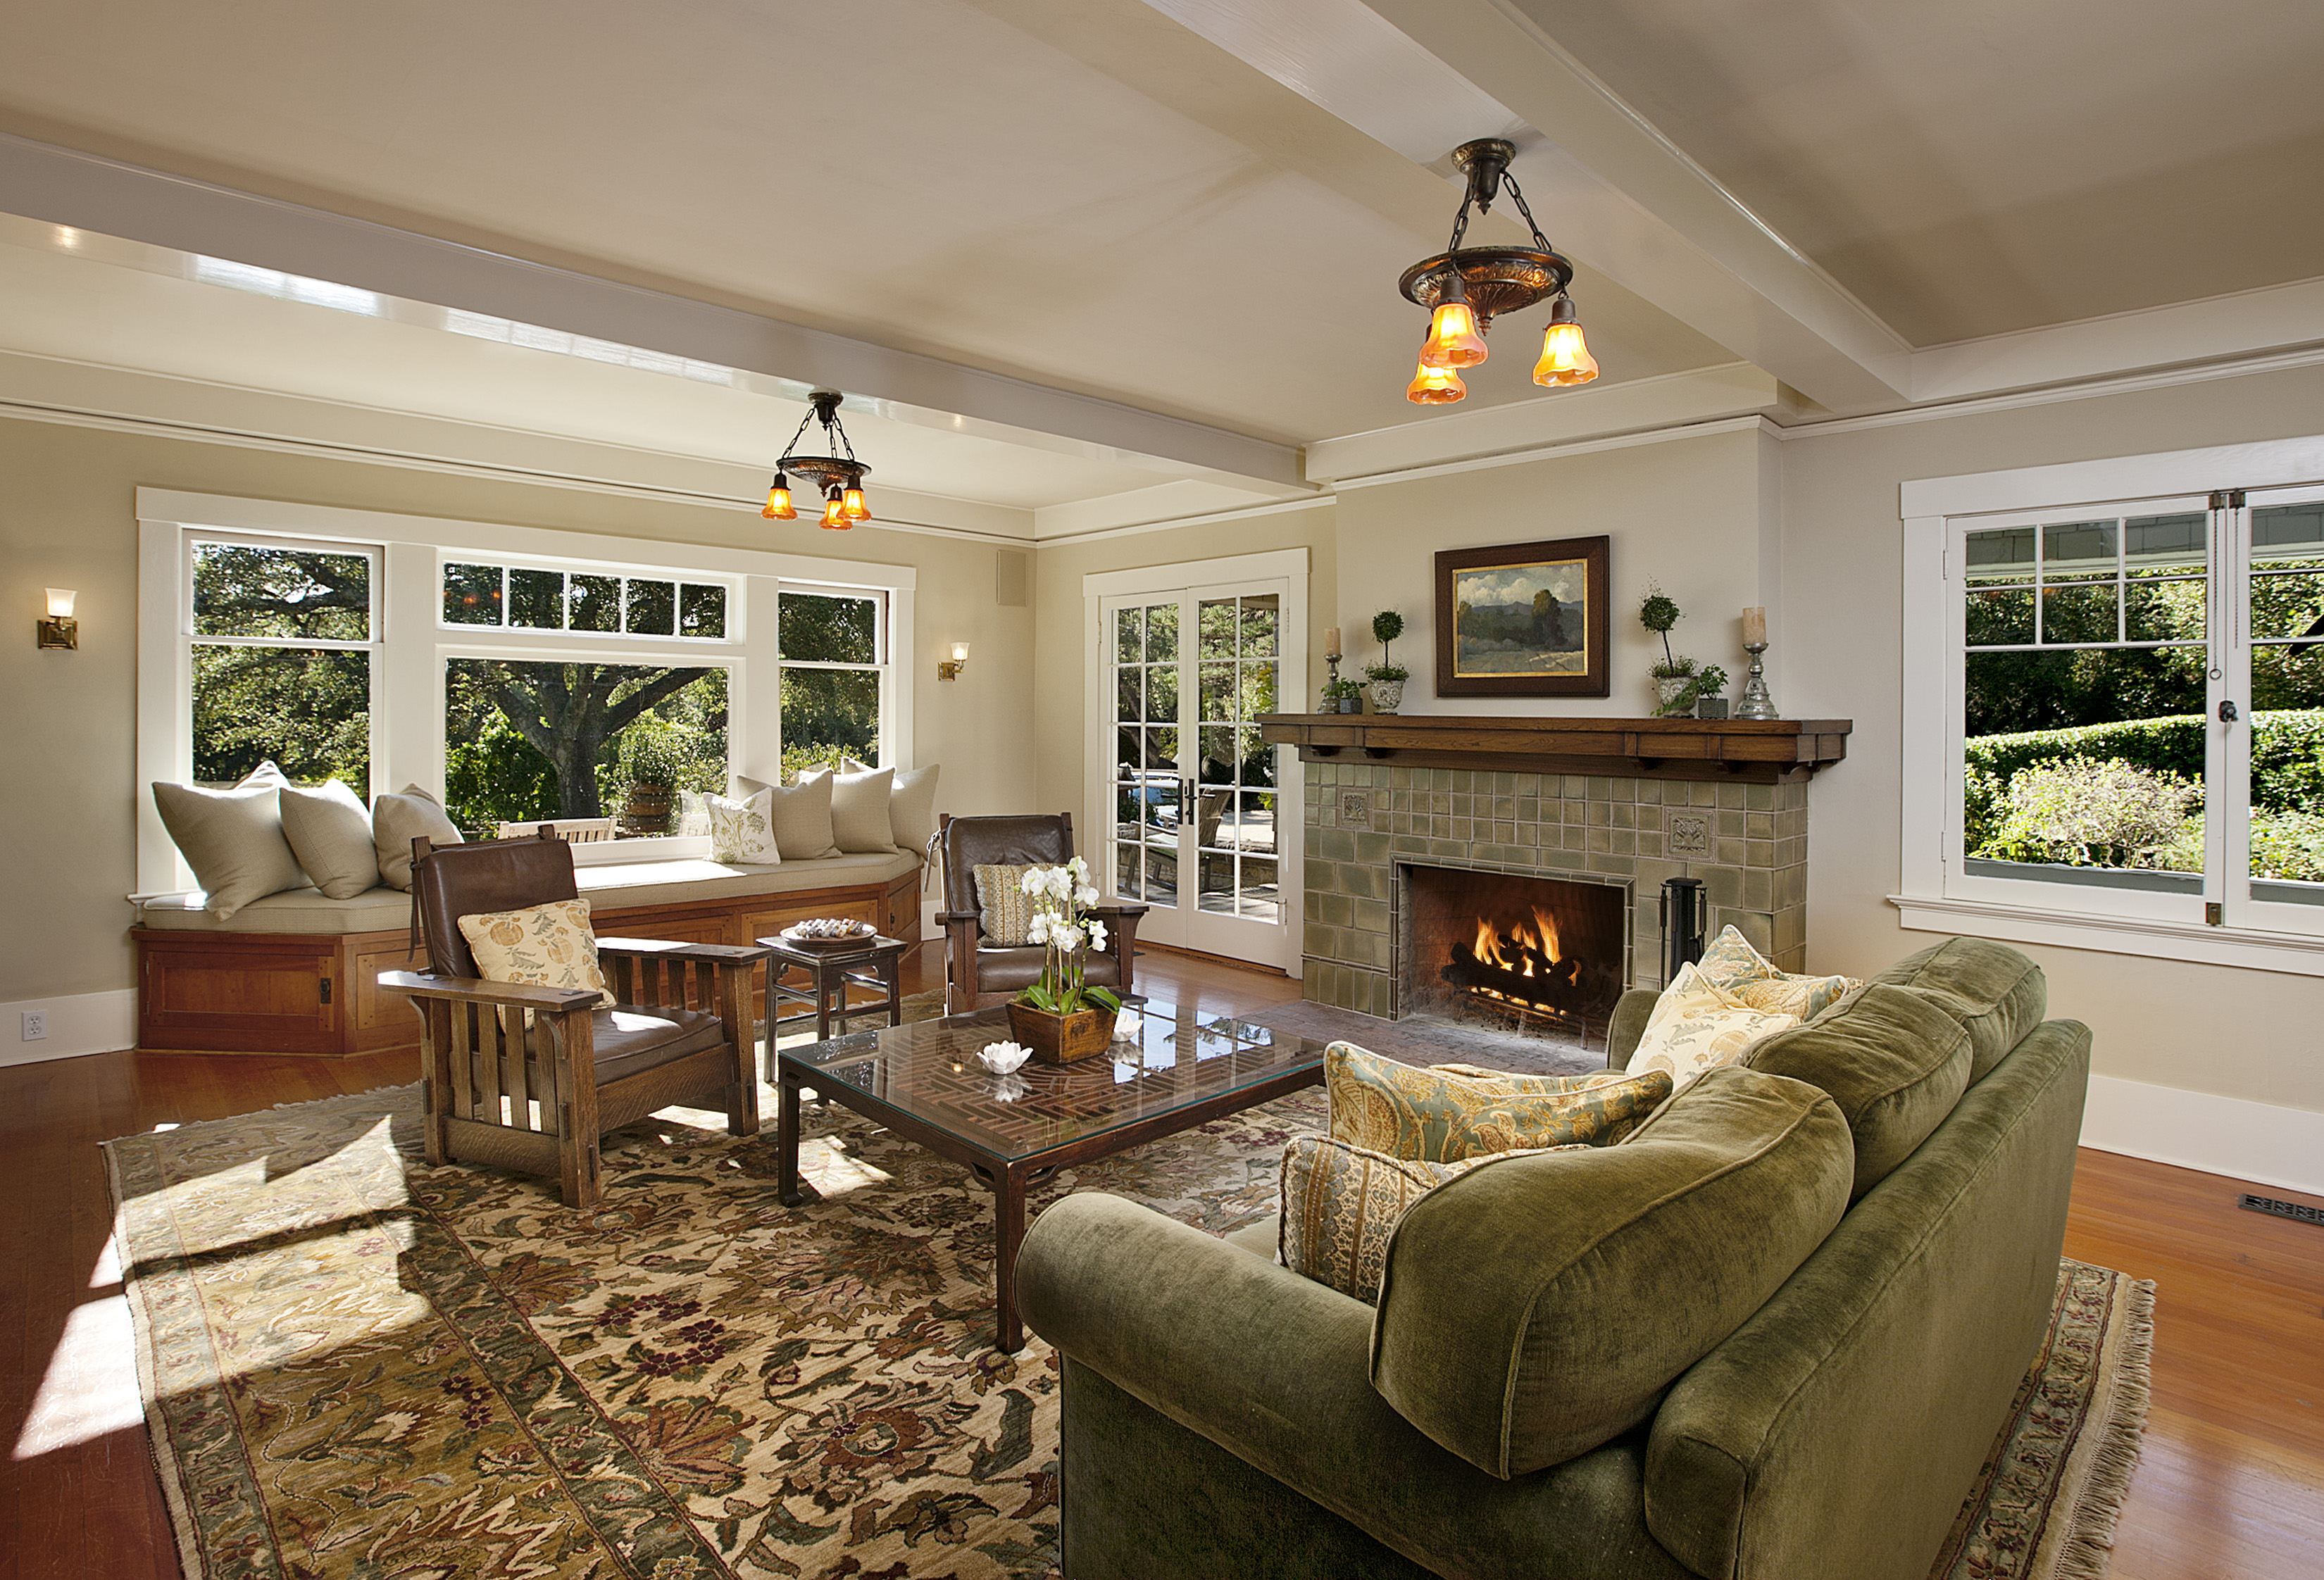 Popular home styles for 2012 montecito real estate - Modern ranch home interior design ...